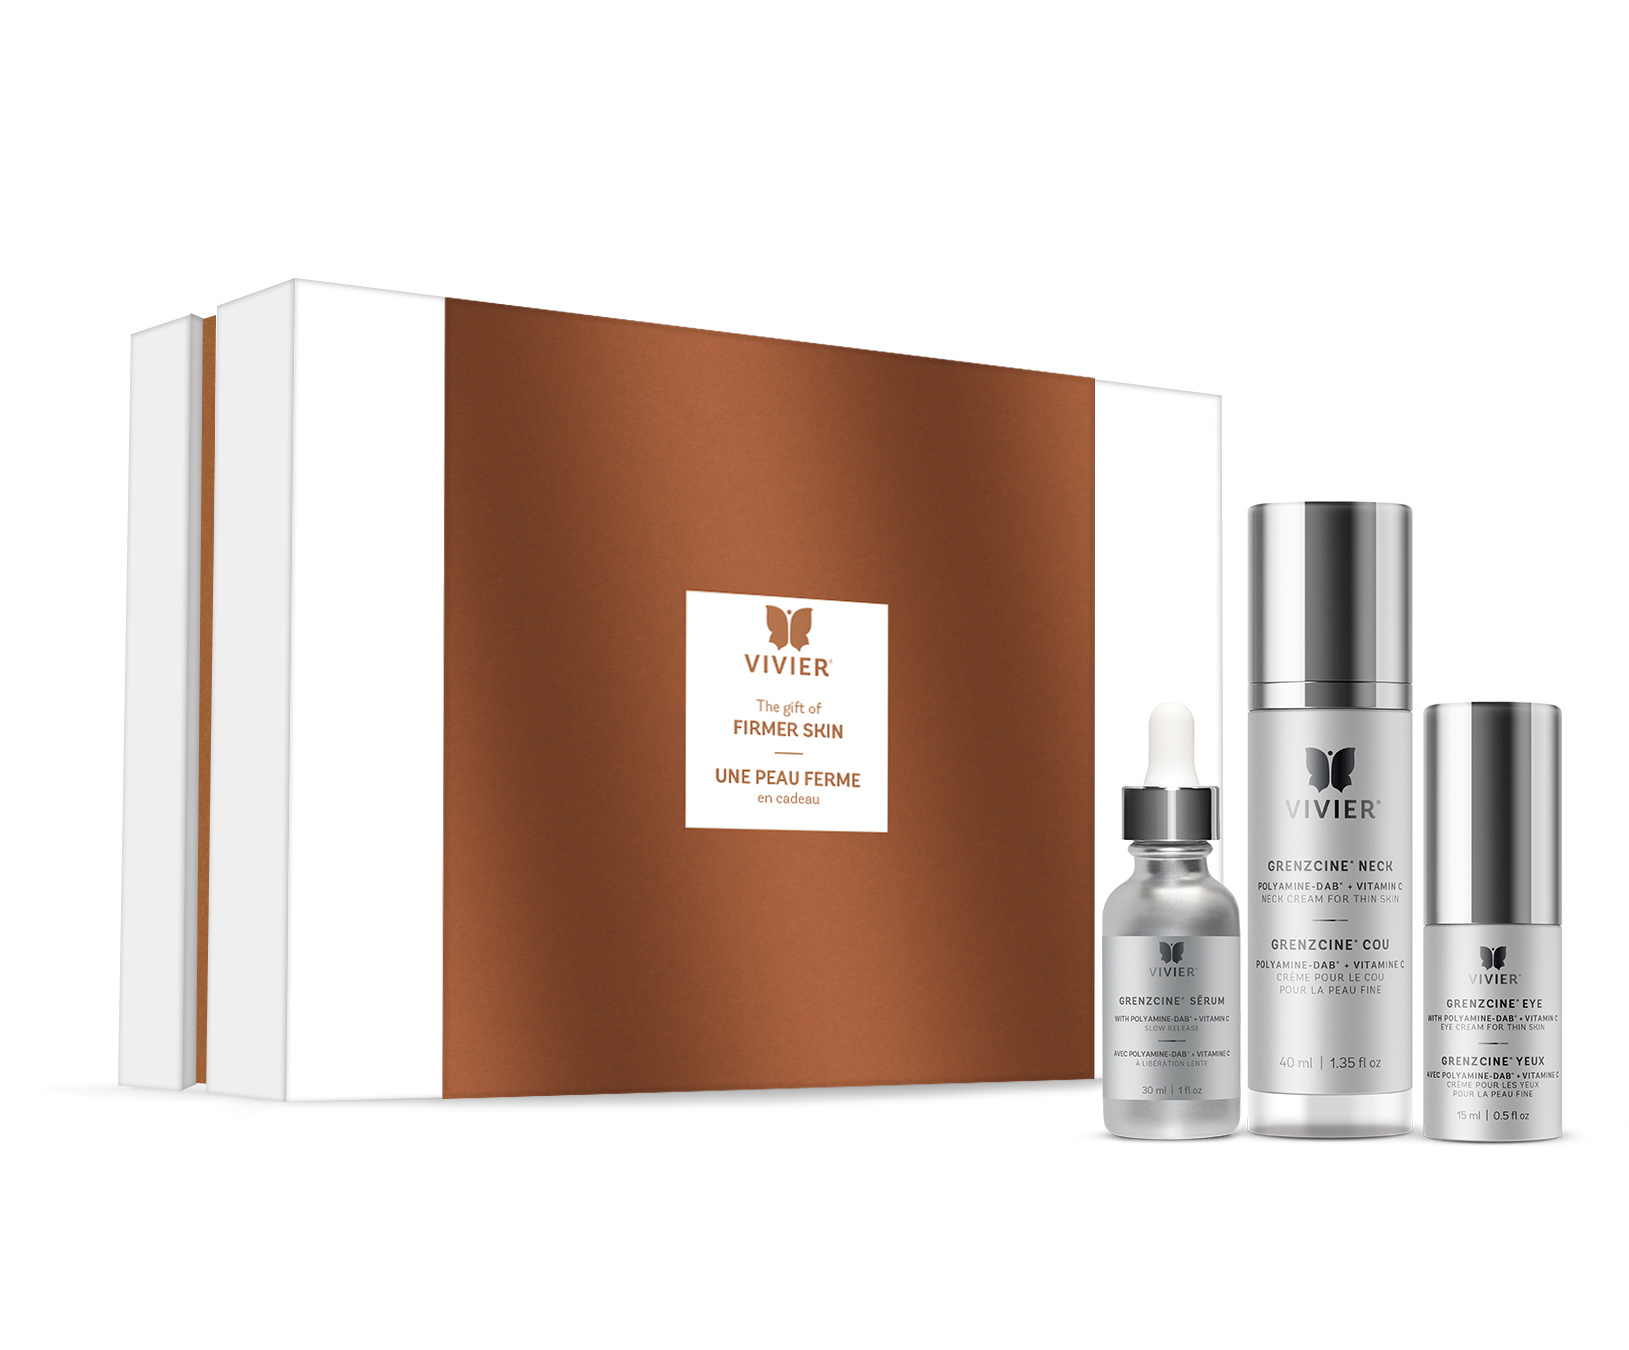 Vivier Holiday Gift Set Limited Edition - Firmer Skin